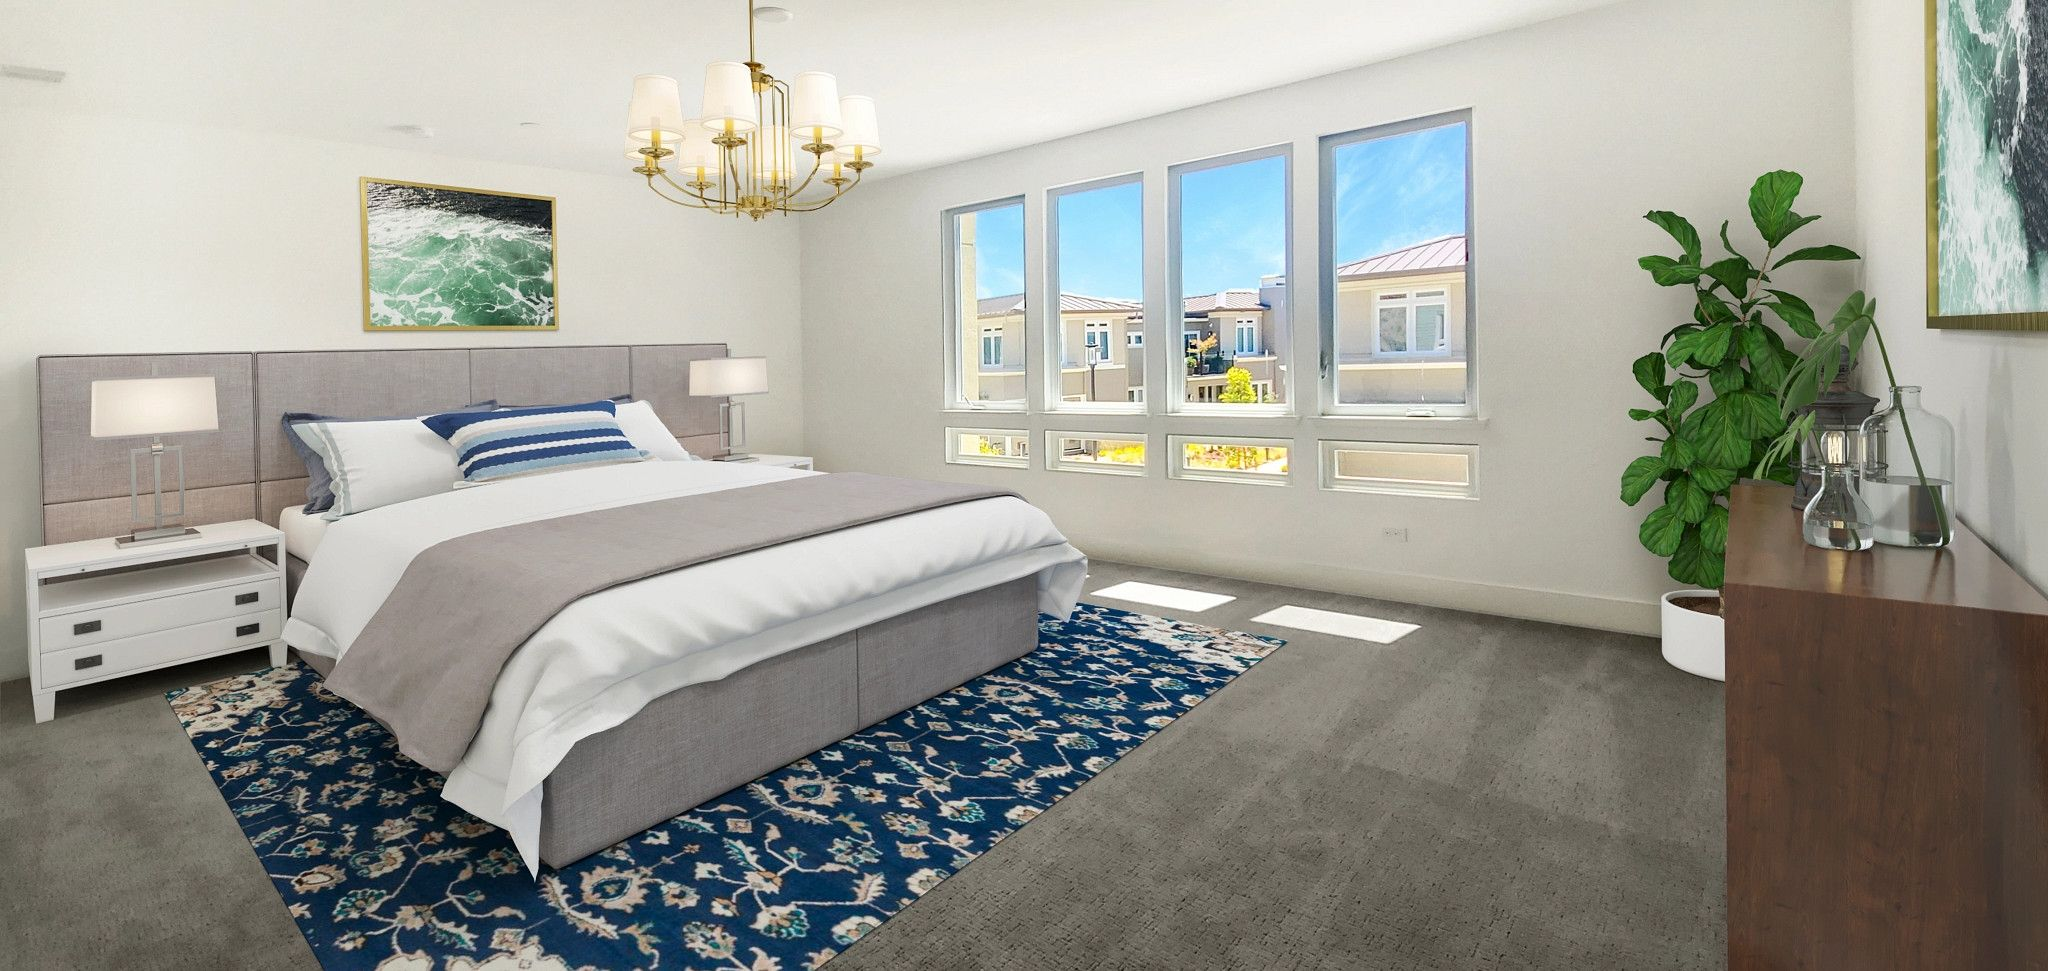 Bedroom featured in the Plan 4A By Shea Homes in Oakland-Alameda, CA